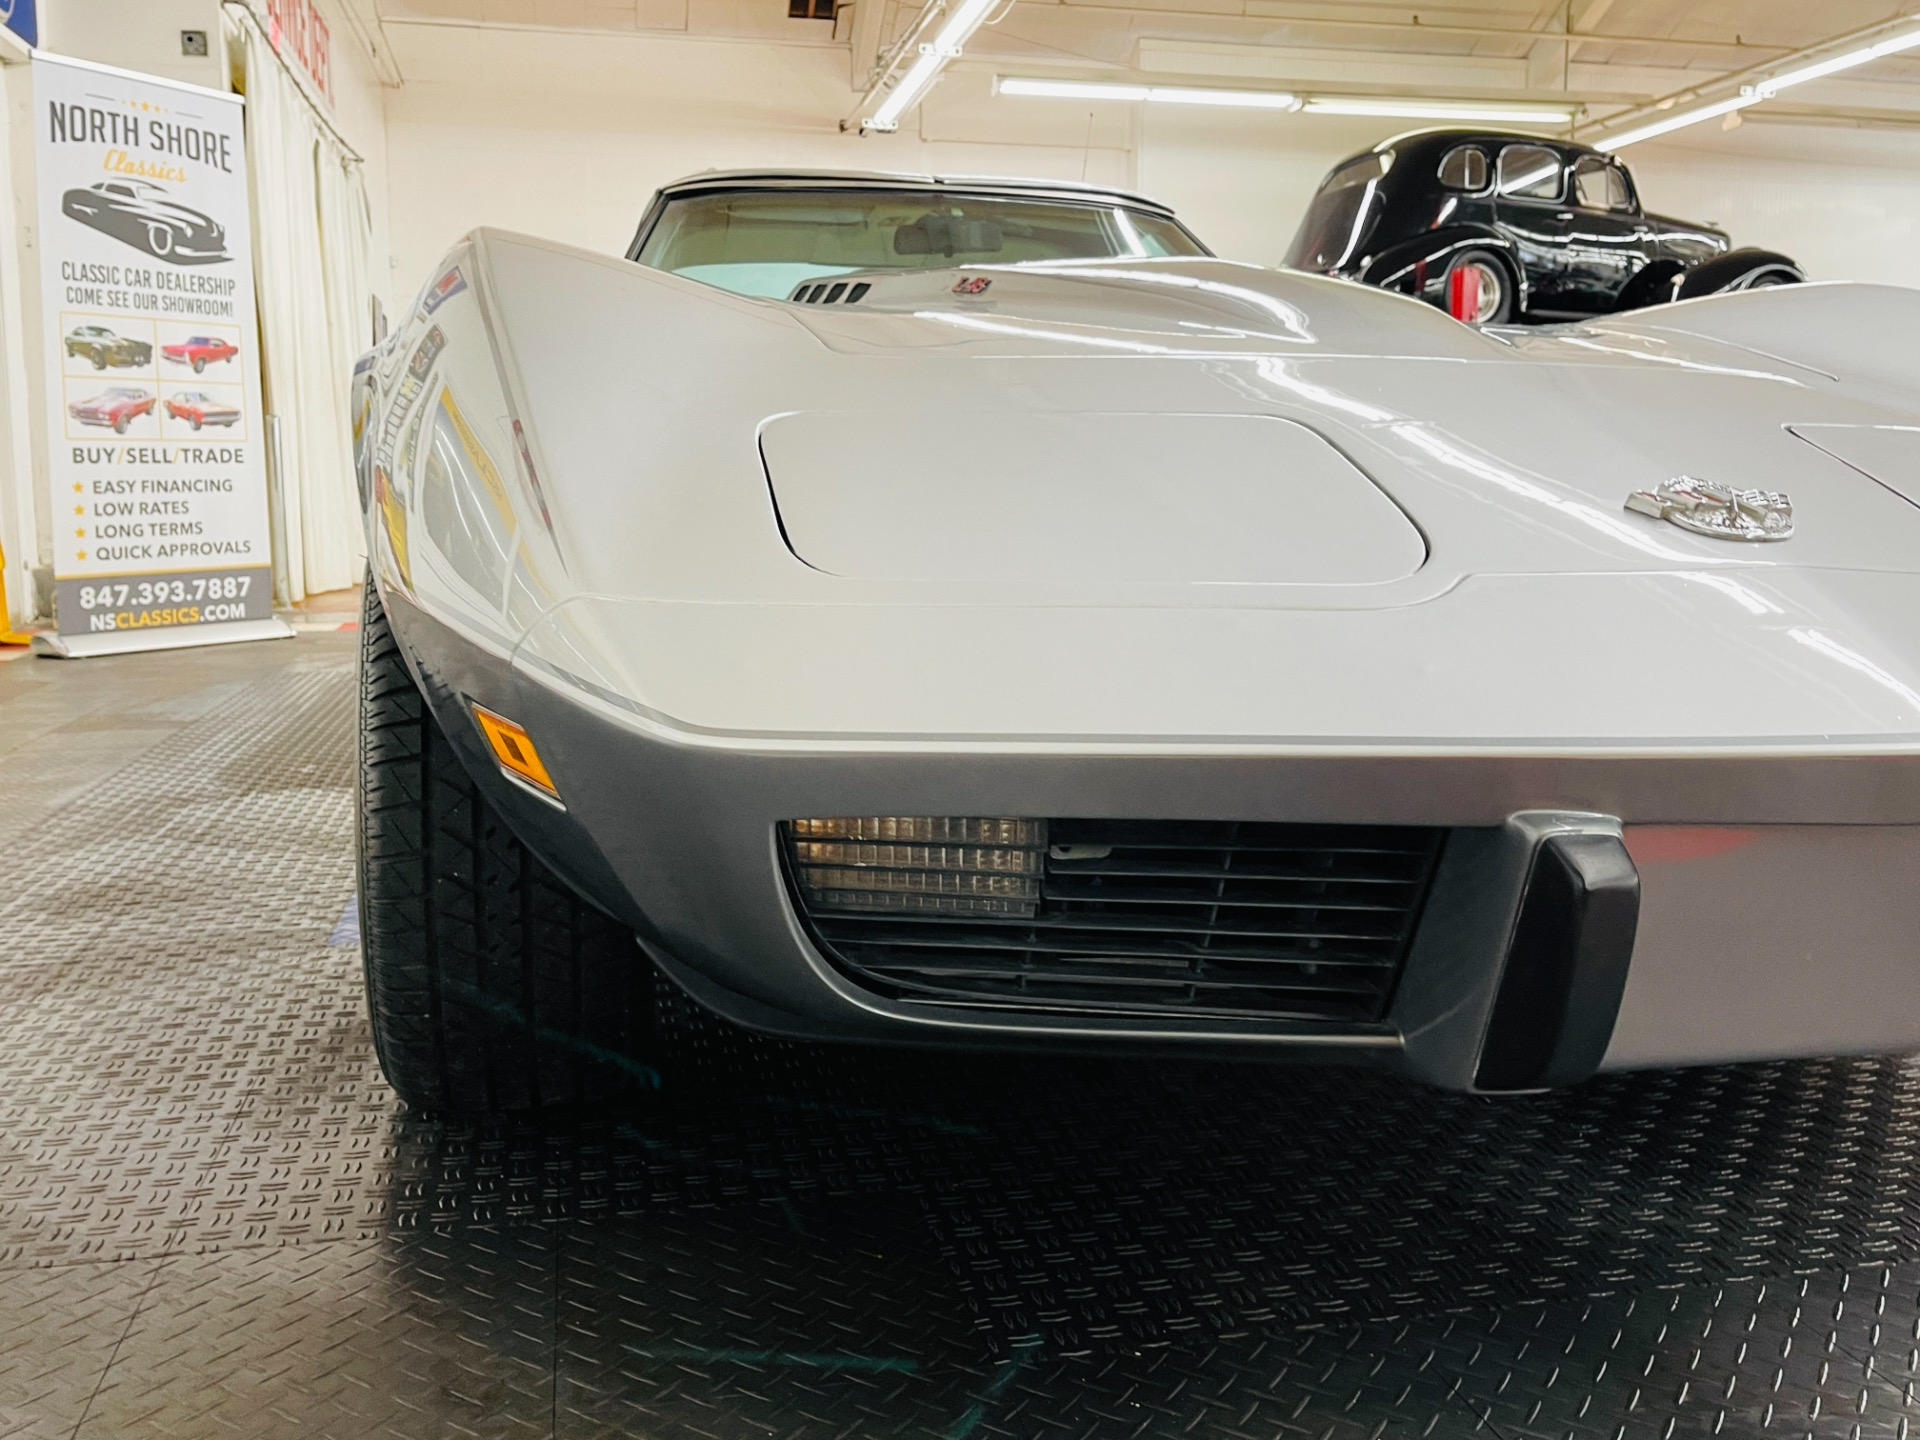 Used 1978 Chevrolet Corvette - 25TH ANNIVERSARY - NEW PAINT - DRIVES GREAT - | Mundelein, IL